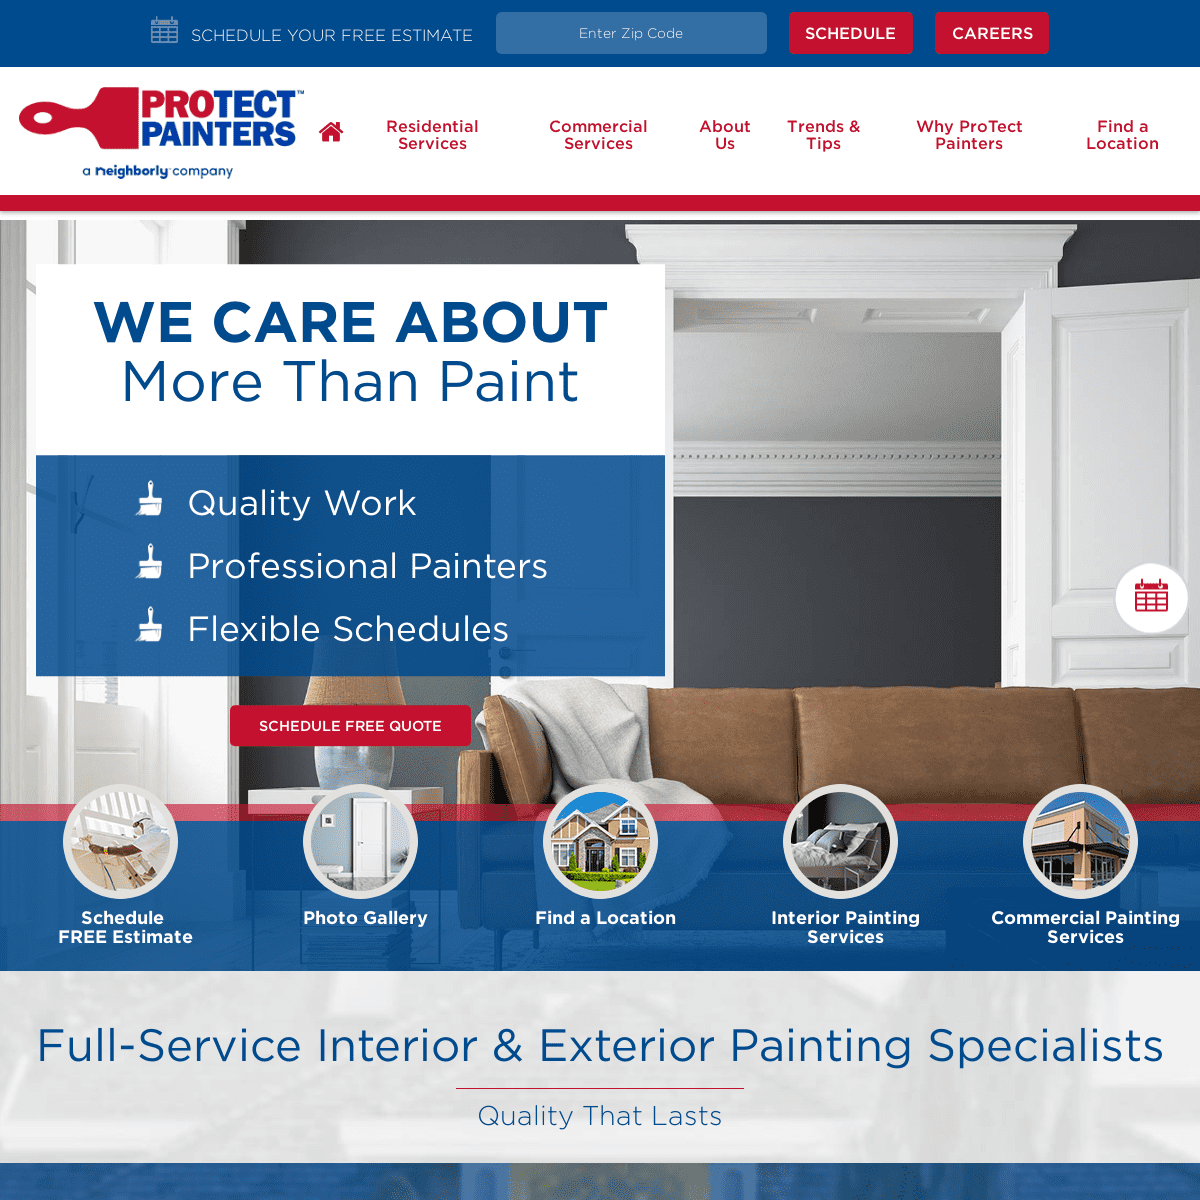 Interior & Exterior Painting - ProTect Painters